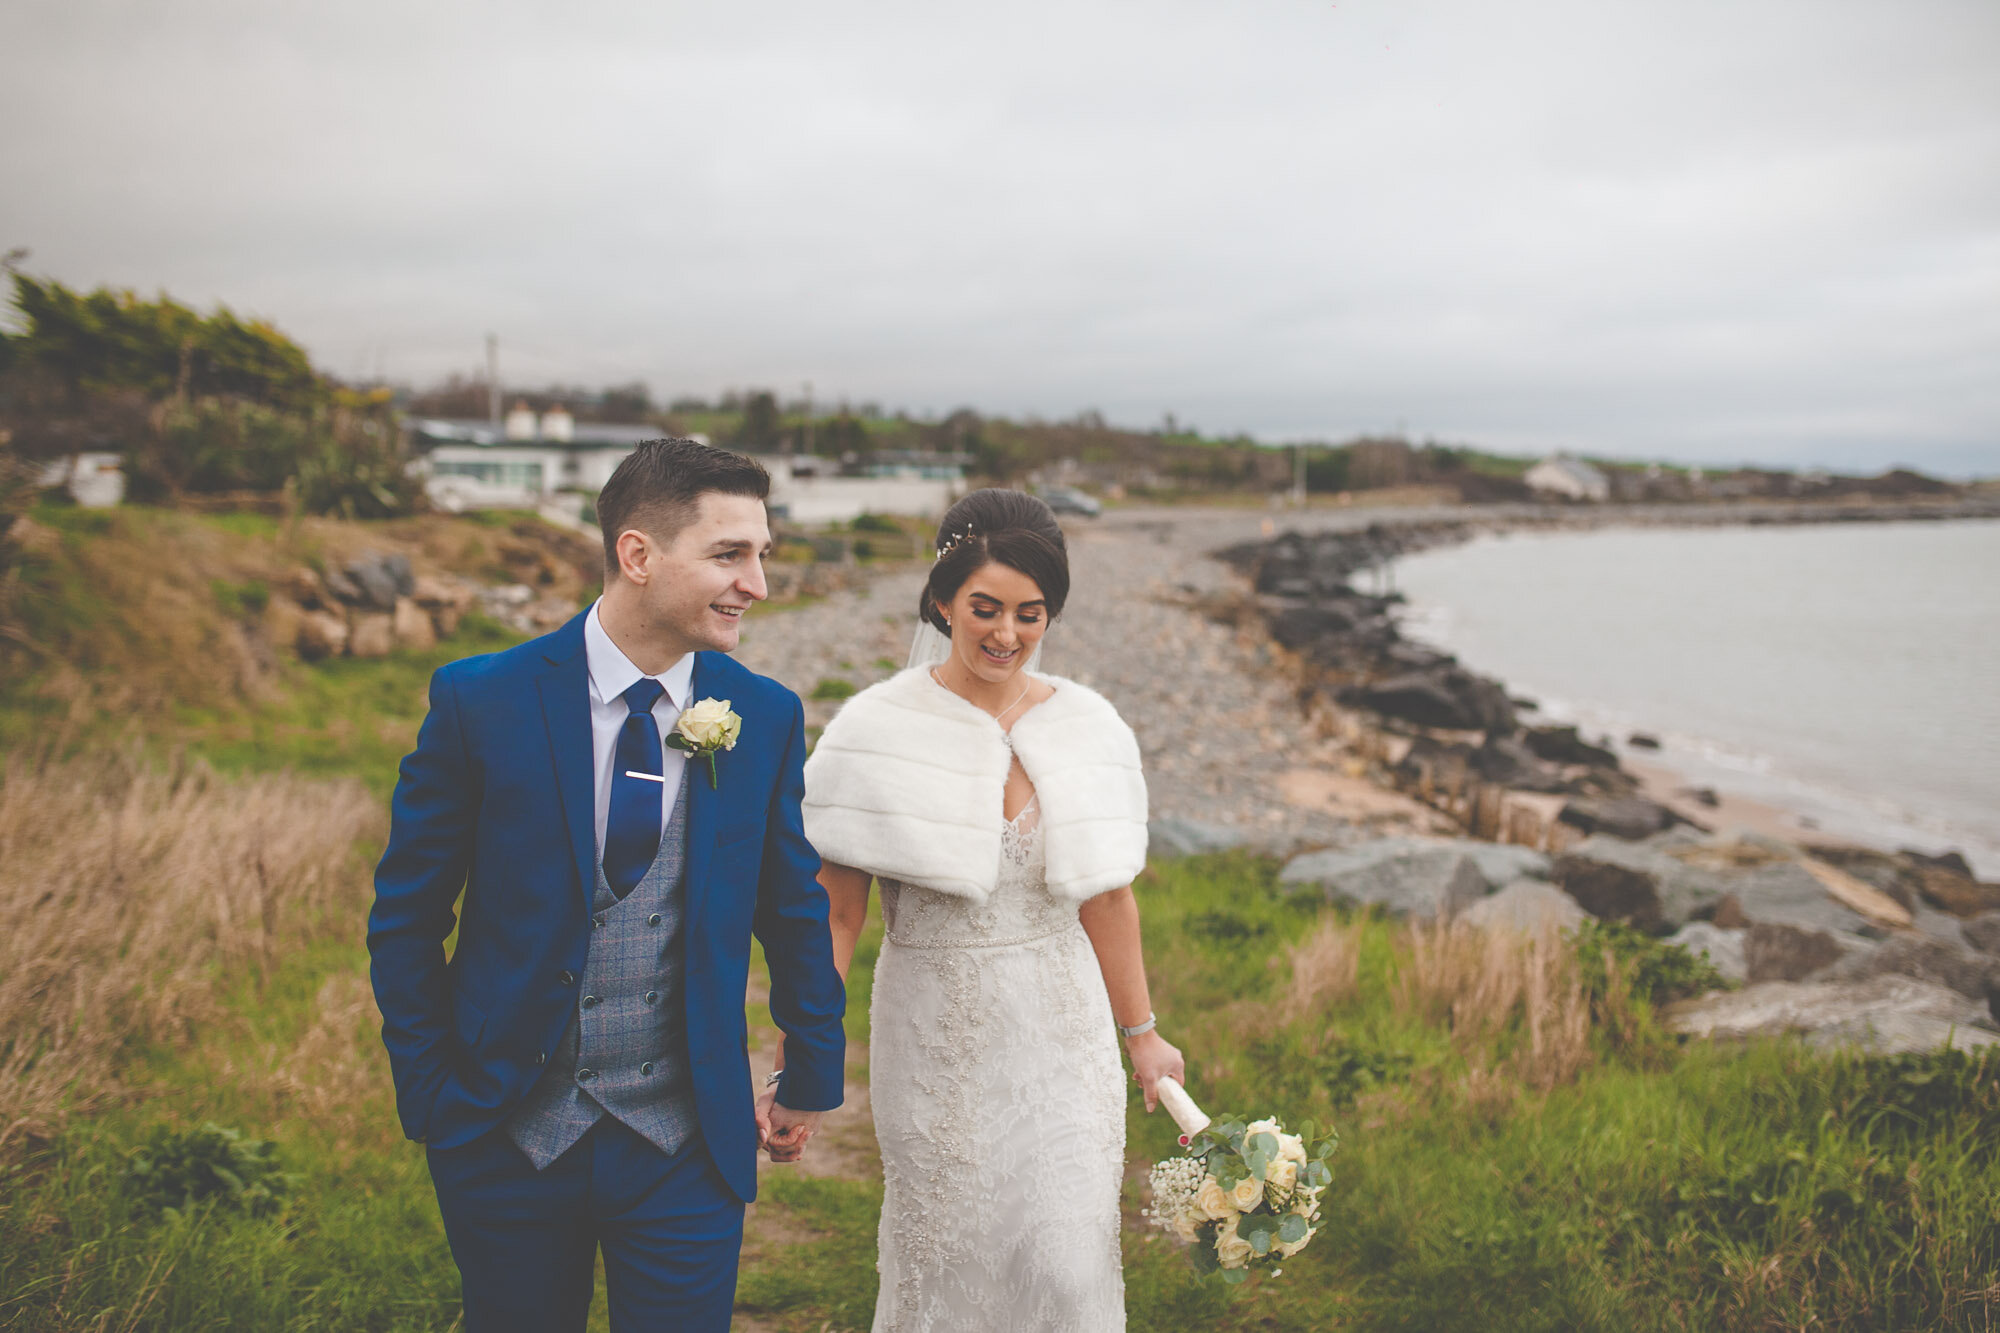 """Chloe & Mark - """"Where to start! So for someone we found scrolling through Google, we instantly seen that Jimmy was what we were looking for in a photographer. He has such a relaxing, laidback approach that made us feel at ease the whole day.Our bridal party & guests all felt at ease & enjoyed what can only be described as"""